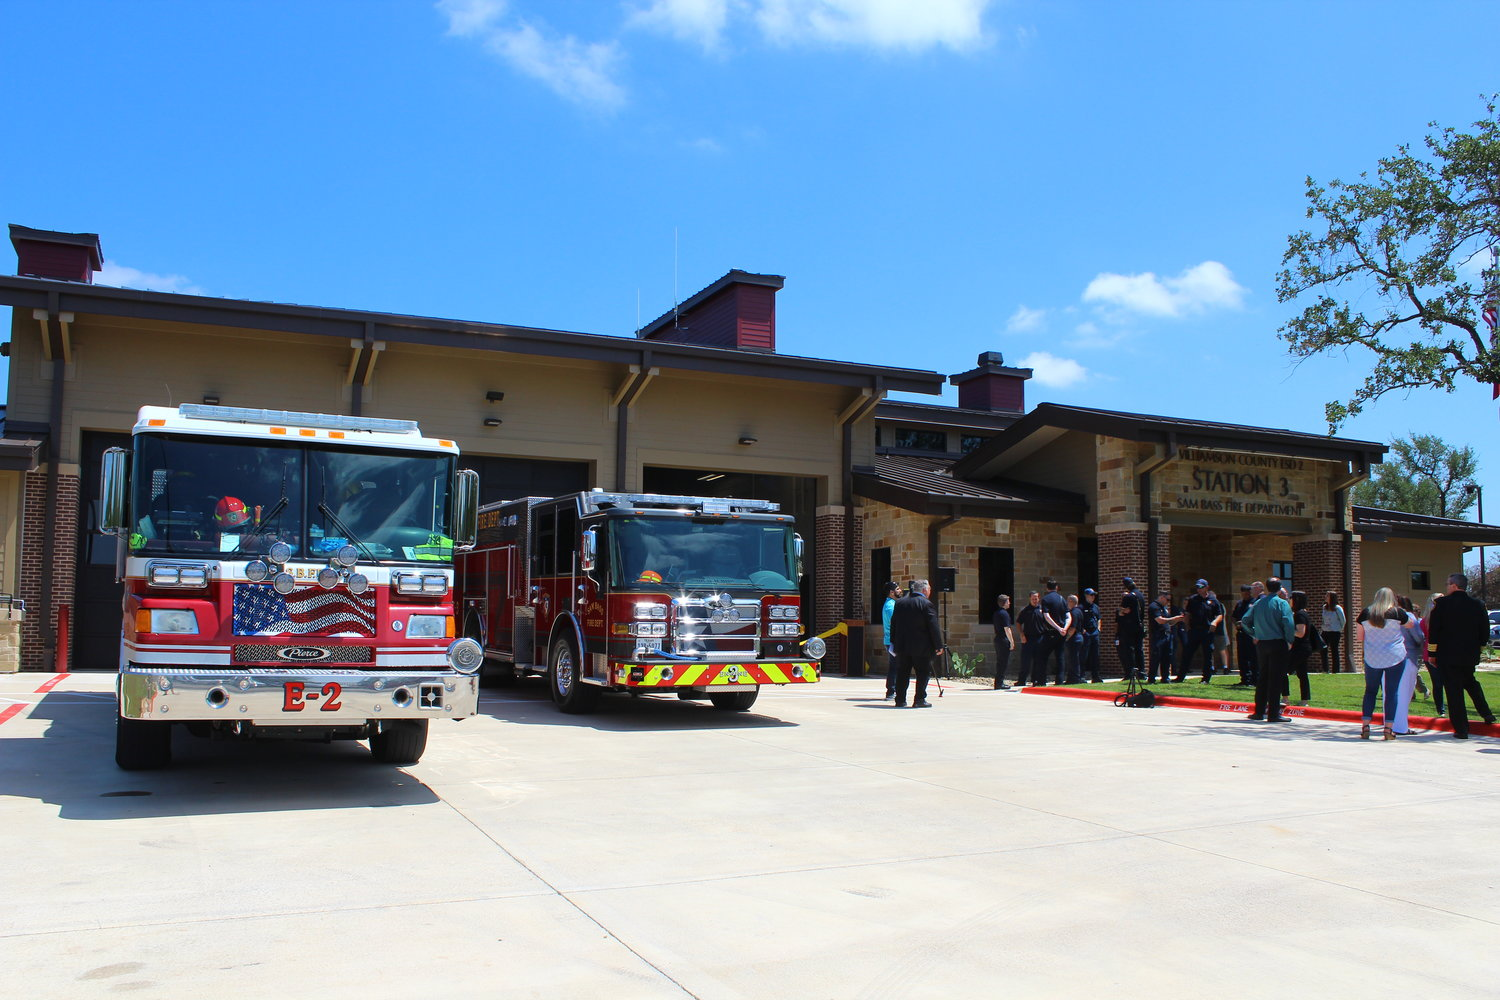 The new Sam Bass Fire Station 3 in Round Rock during a grand opening ceremony on May 16, 2019.